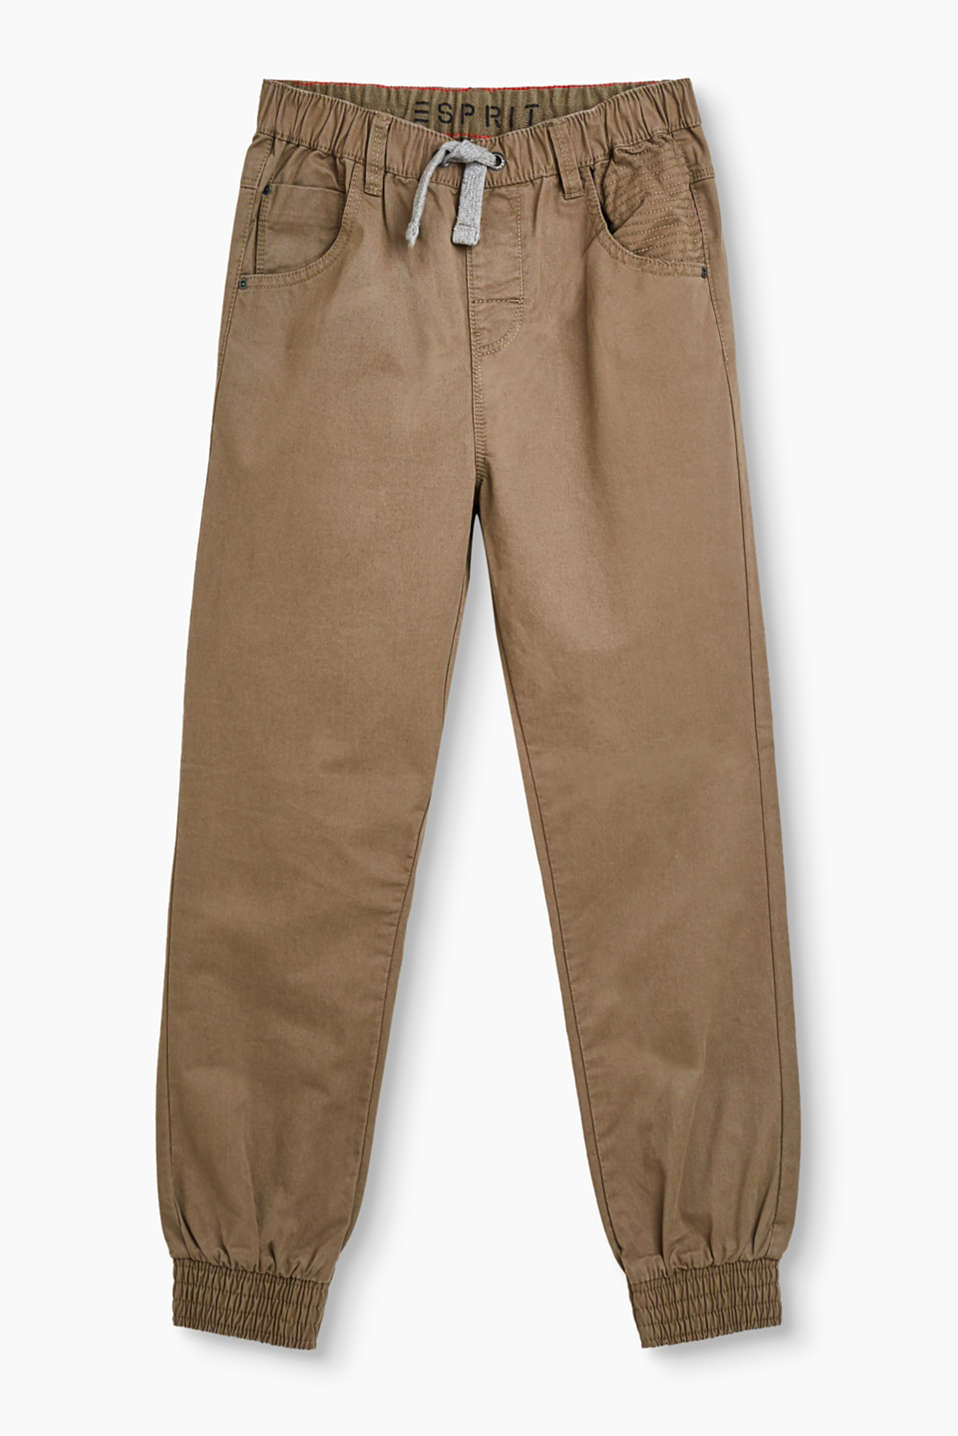 Casual, cool cotton trousers with elasticated waistband and hems and added stretch for comfort